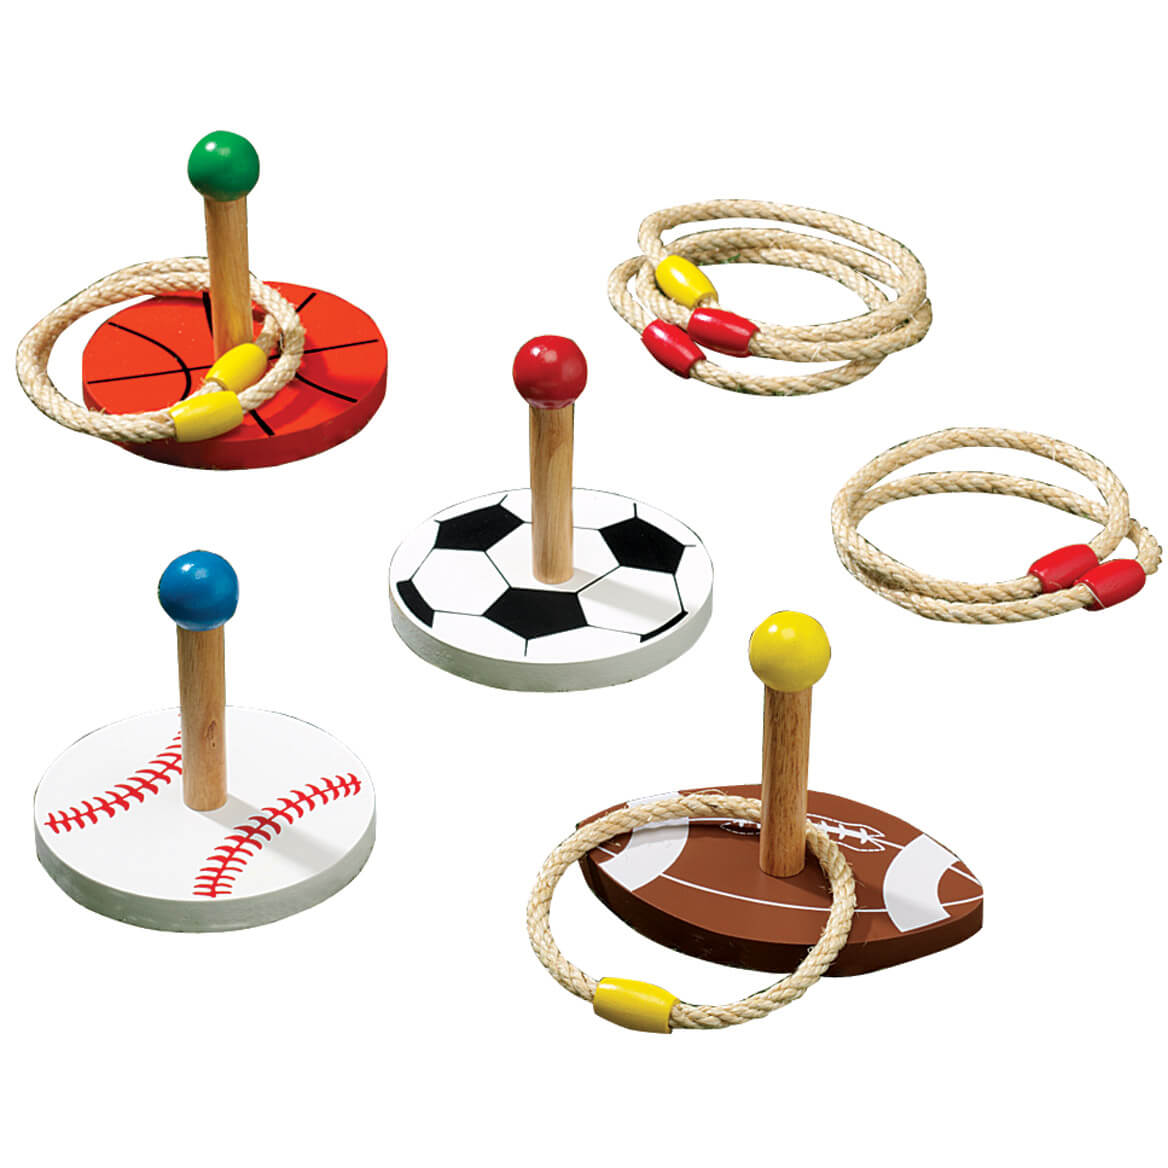 Sports Ring Toss Game Wooden Ring Toss Game Miles Kimball